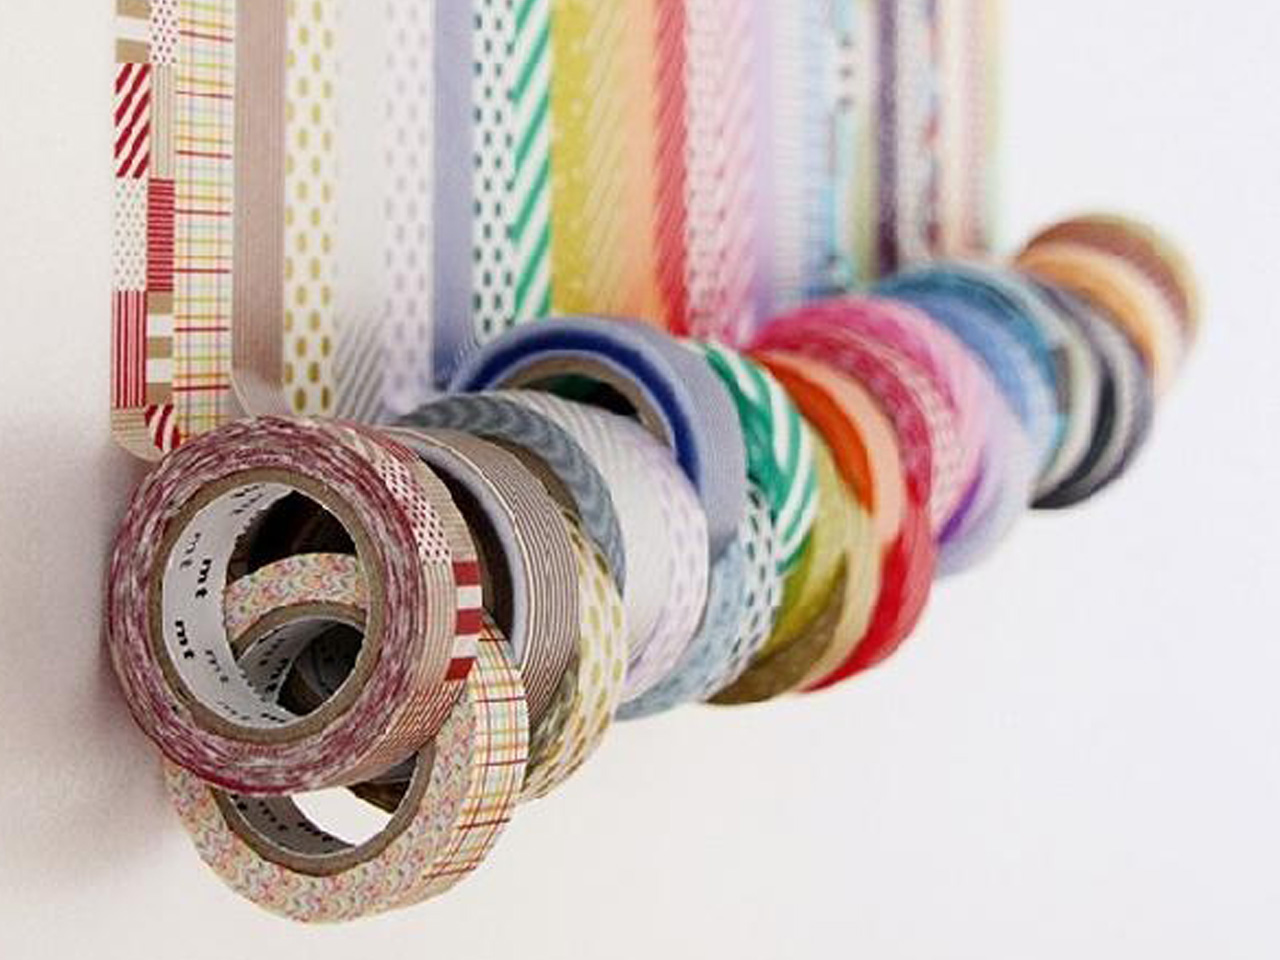 Ideas Para Decorar Con Washi Tape 10 Propuestas Diy Para Decorar Con Washi Tape